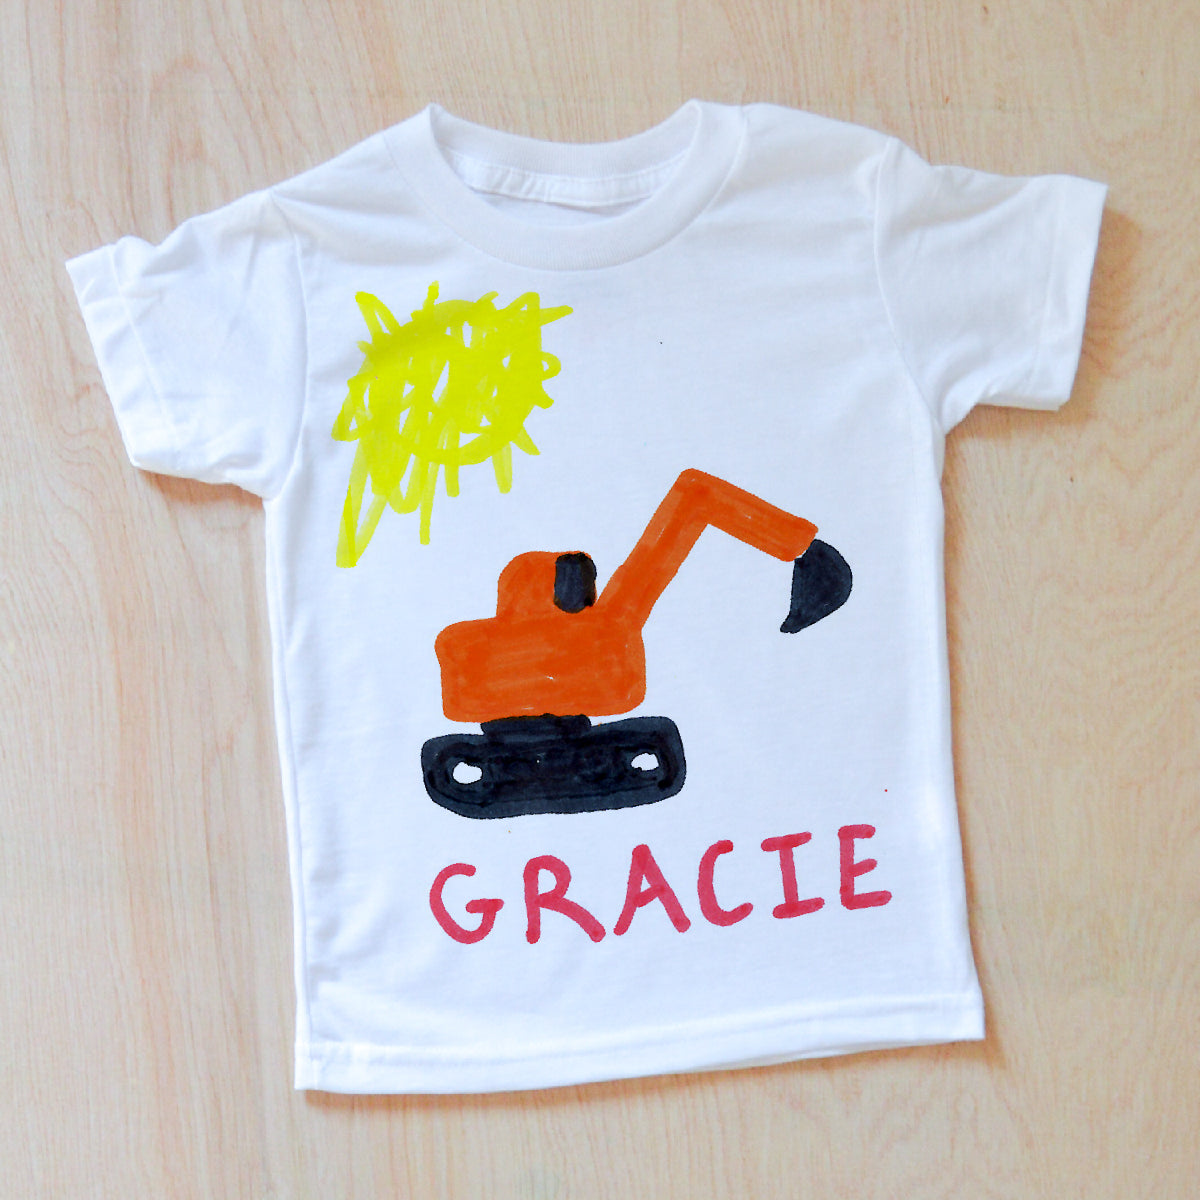 Color Your Own T-Shirt | Turn Your Child's Artwork into a T-shirt ...